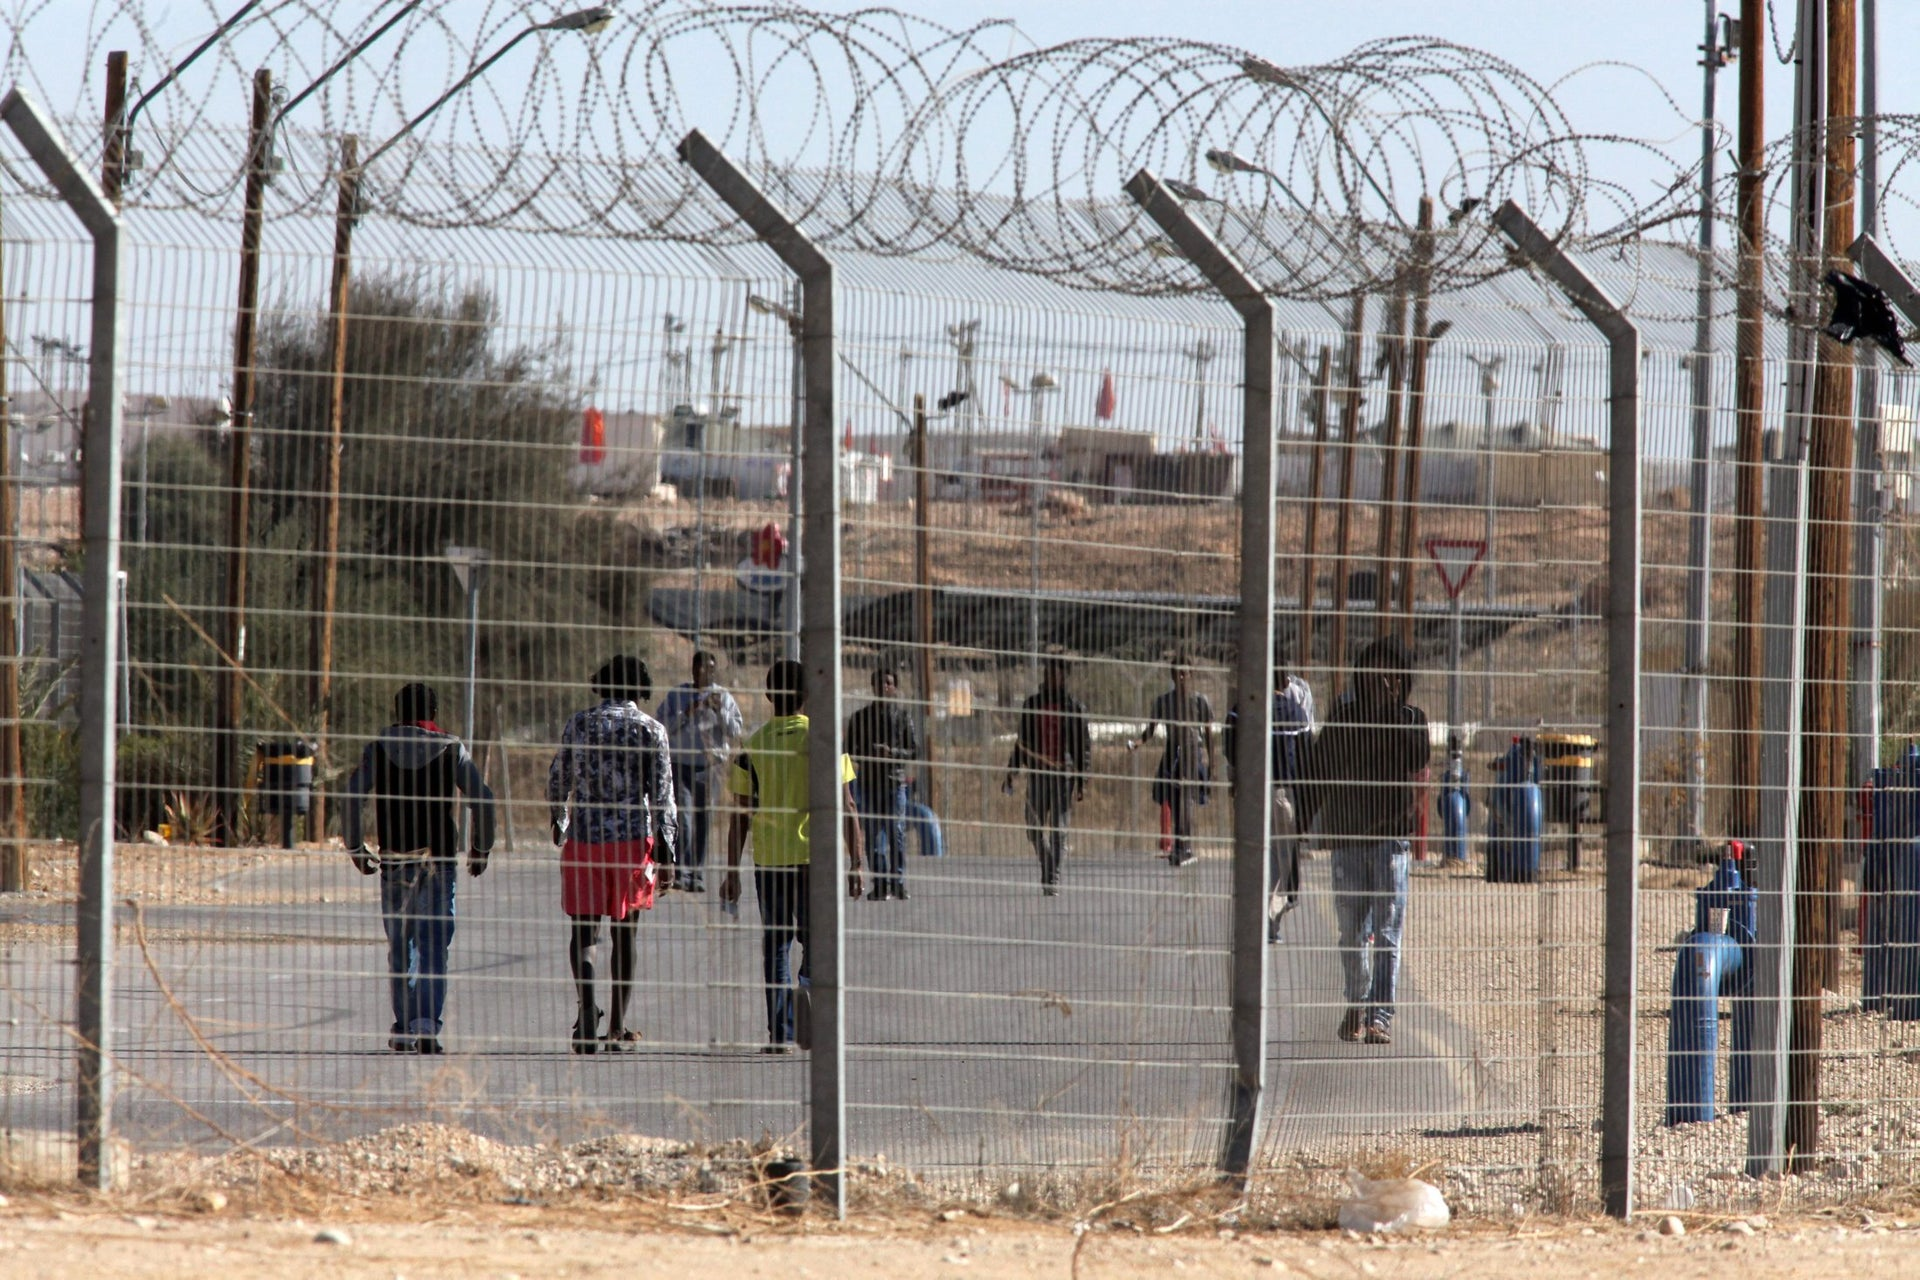 Eritrean and Sudanese asylum seekers at the Holot Detention Center in southern Israel, December 8, 2016.